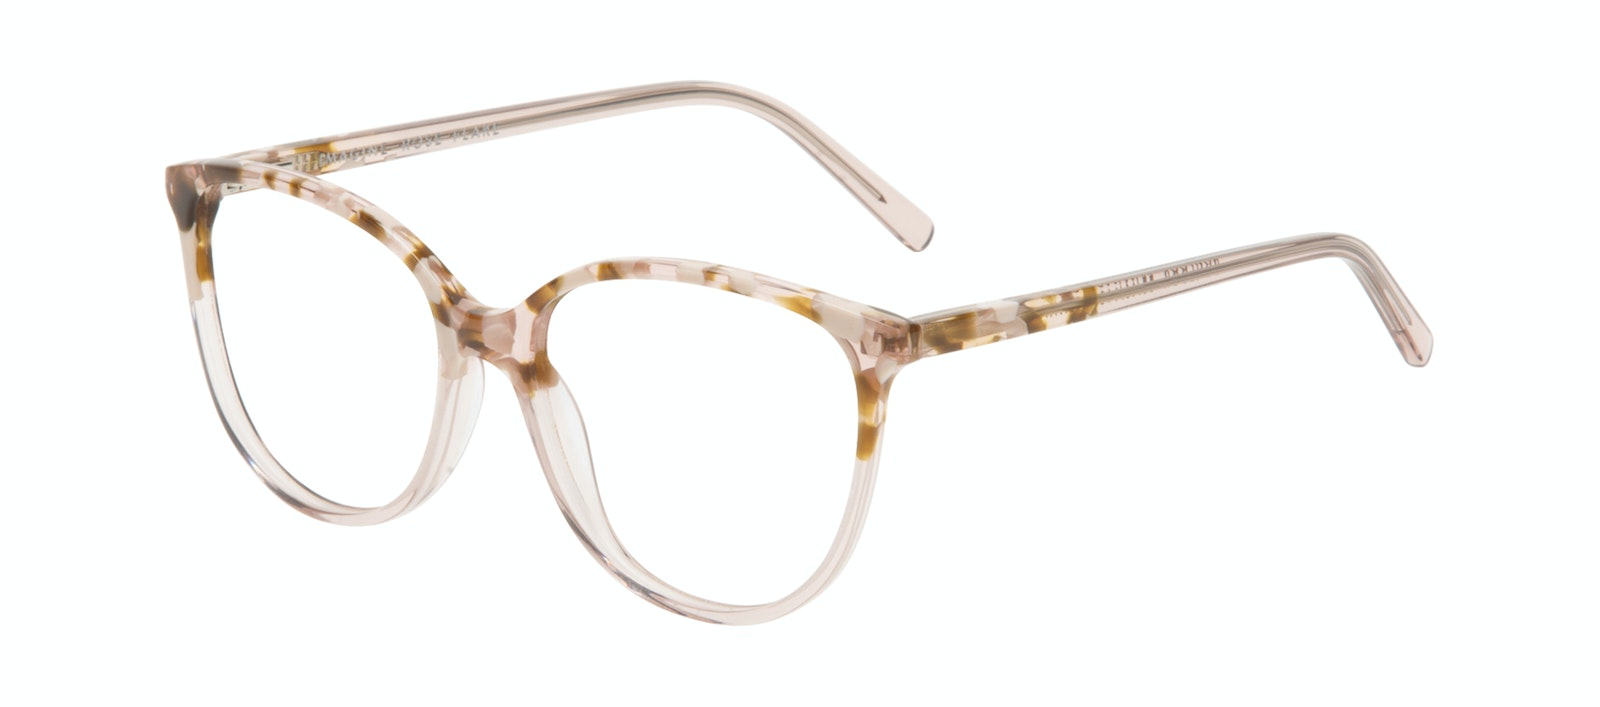 59c36180c09a Affordable Fashion Glasses Round Eyeglasses Women Imagine Rose Flake Tilt